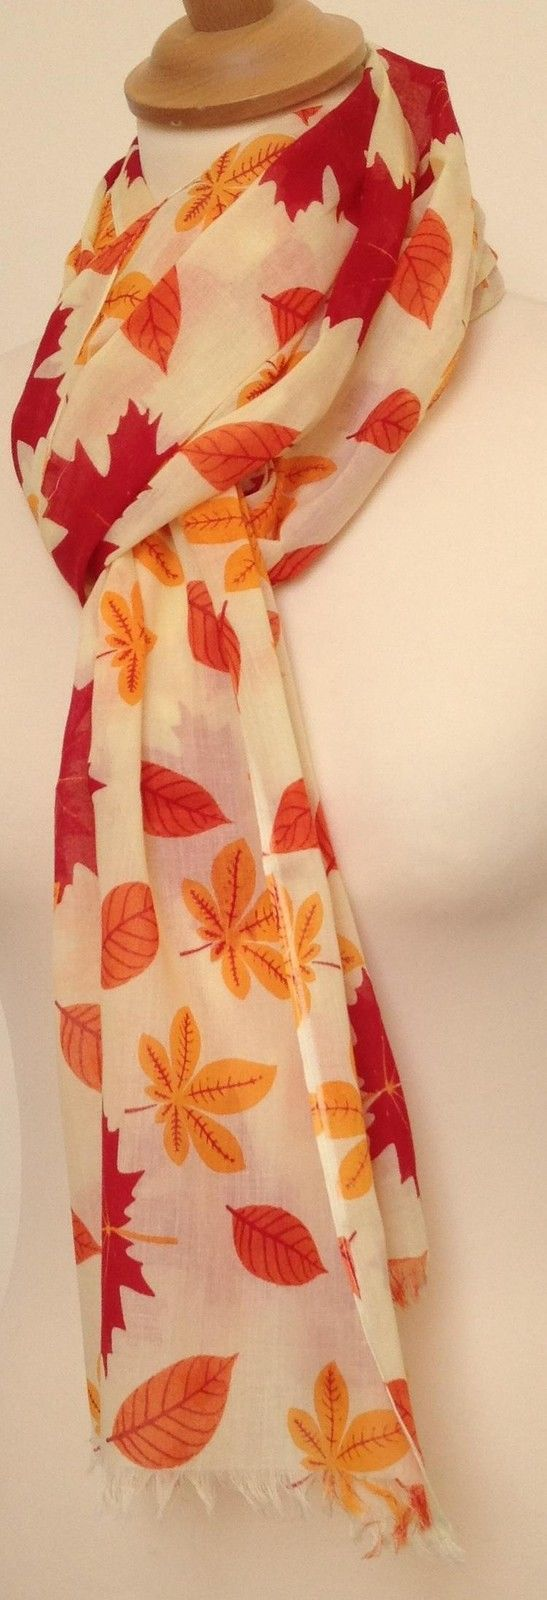 A beautiful autumnal golden leaf print scarf. Scarf fabric - 100% cotton. Repeat design of golden autumn leaves. Scarf print - leaves. Care instructions - cool hand wash. | eBay!